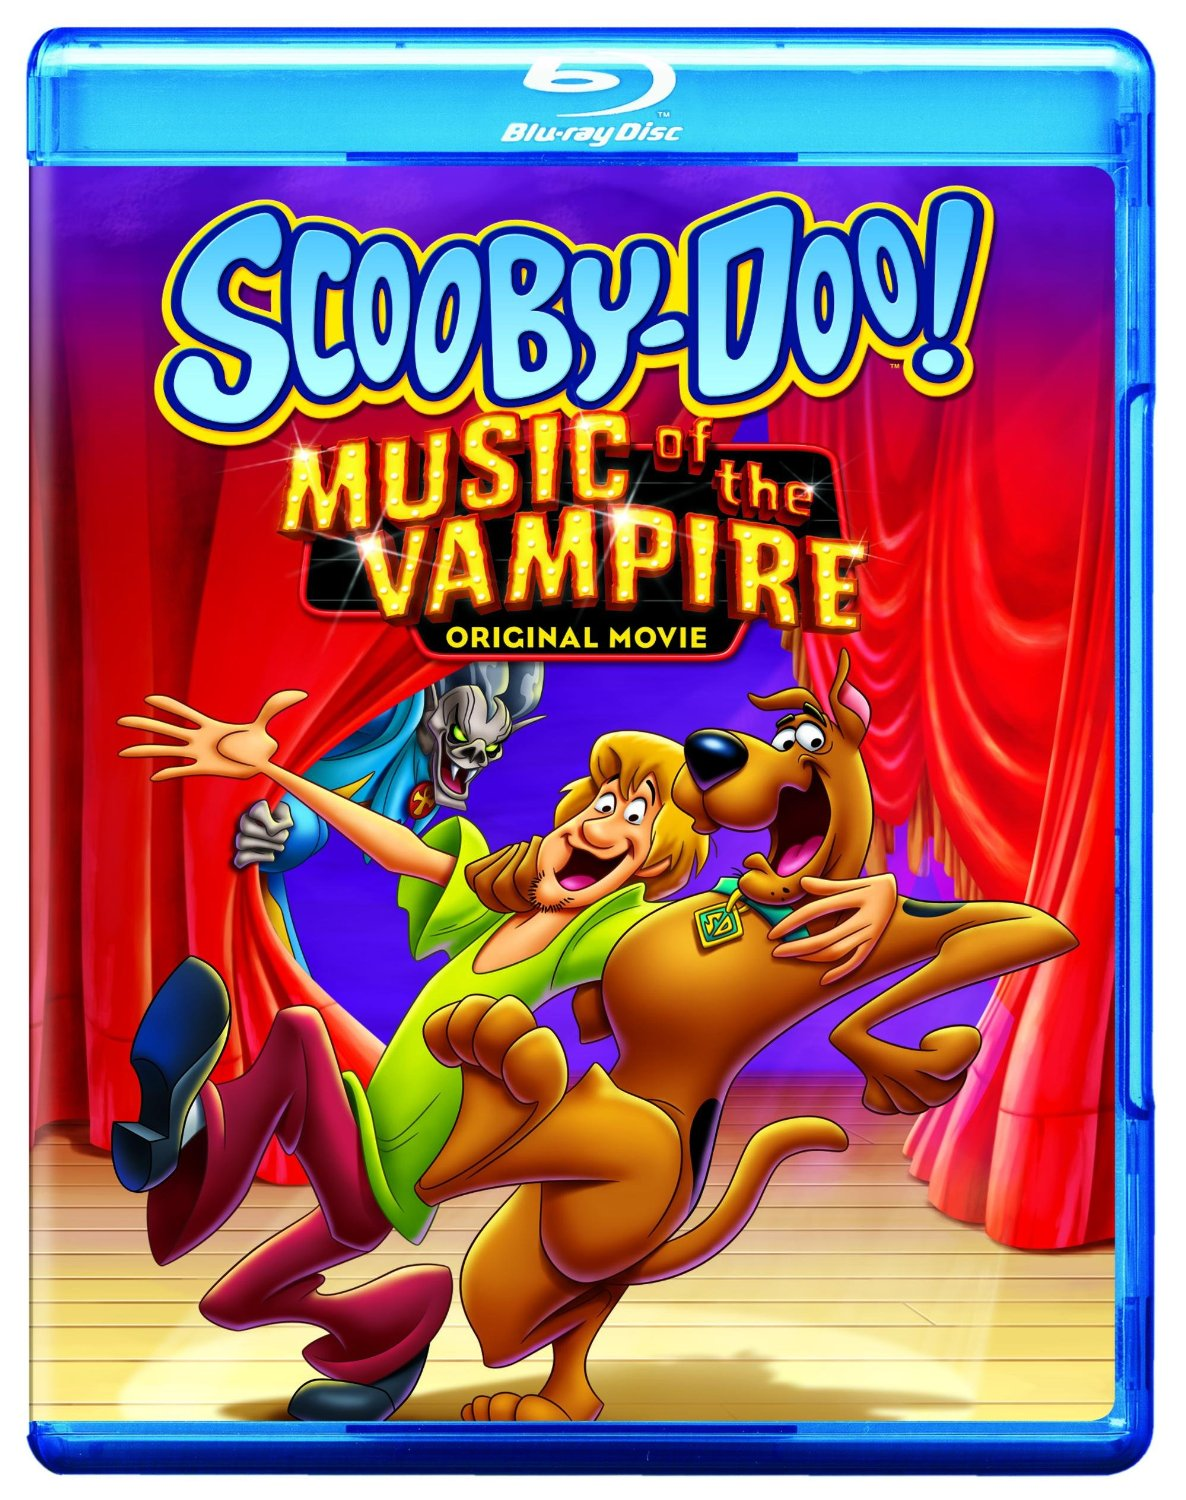 Scooby doo music of the vampire usa 2011 horrorpedia - Scoobidou film ...